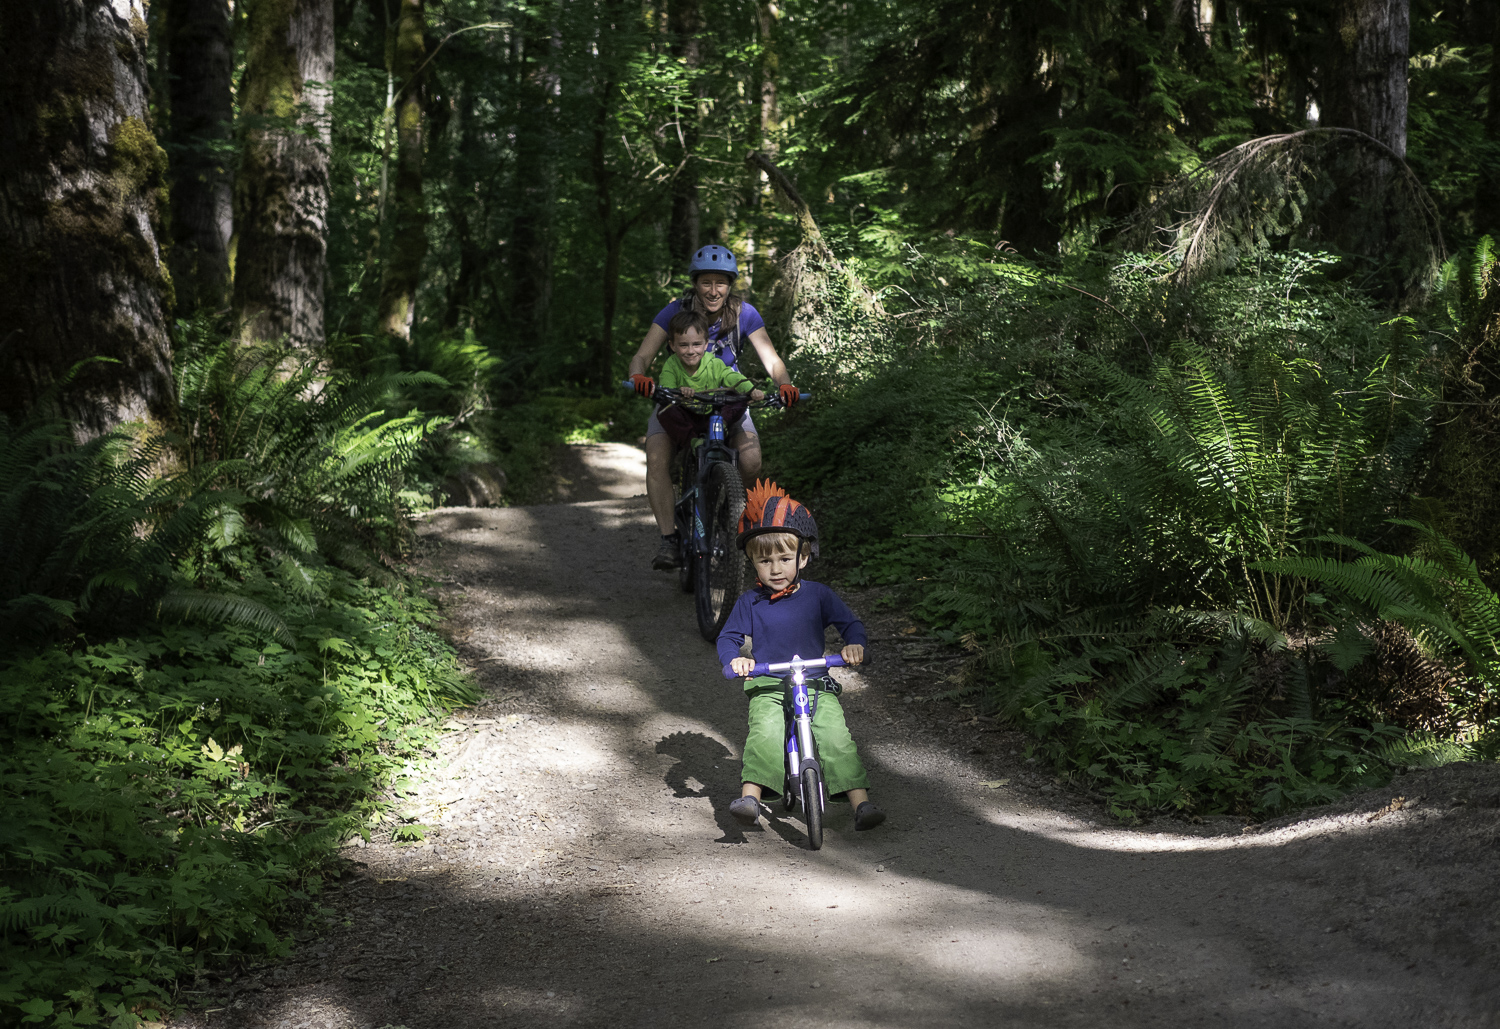 We Found Mom - Sandy Ridge Mtb Trails, OR